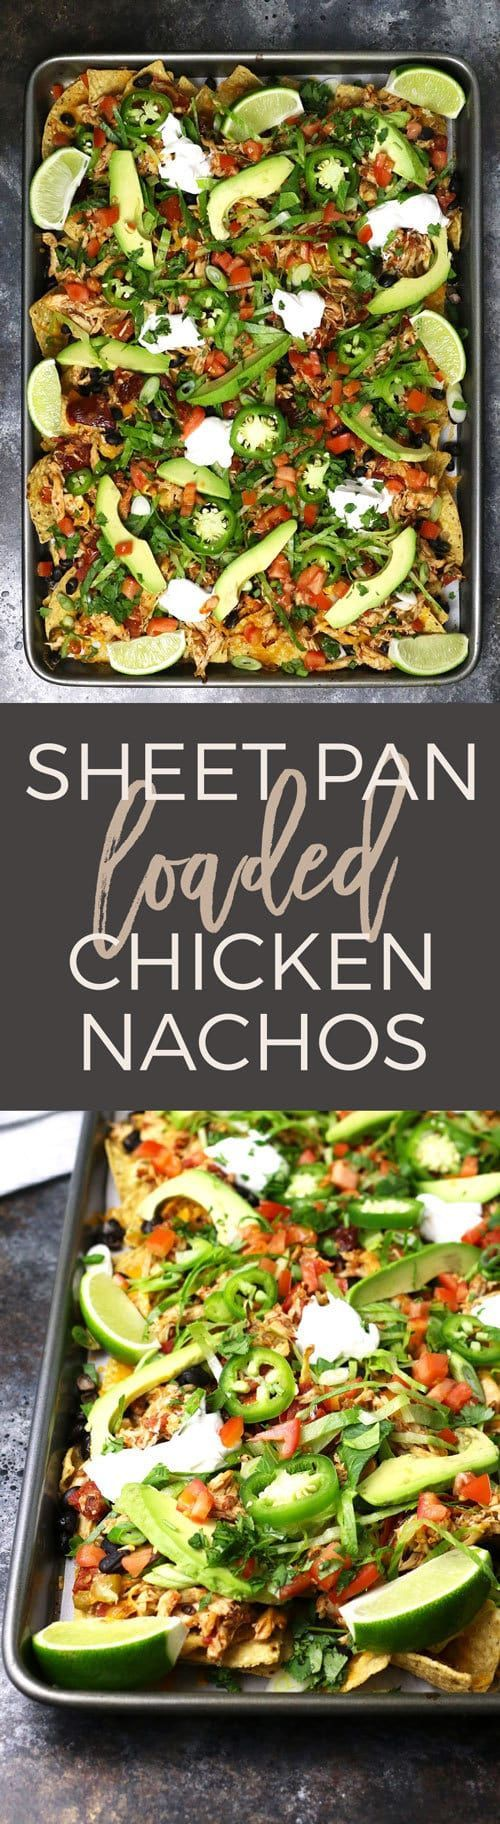 These sheet pan loaded chicken nachos are delicious AND easy to make! Make theslow cooker chicken the night before or the morning of to save time.Thisappetizer is the perfect game day recipe and it'salso great for large holiday gatherings! #gameday #nachos